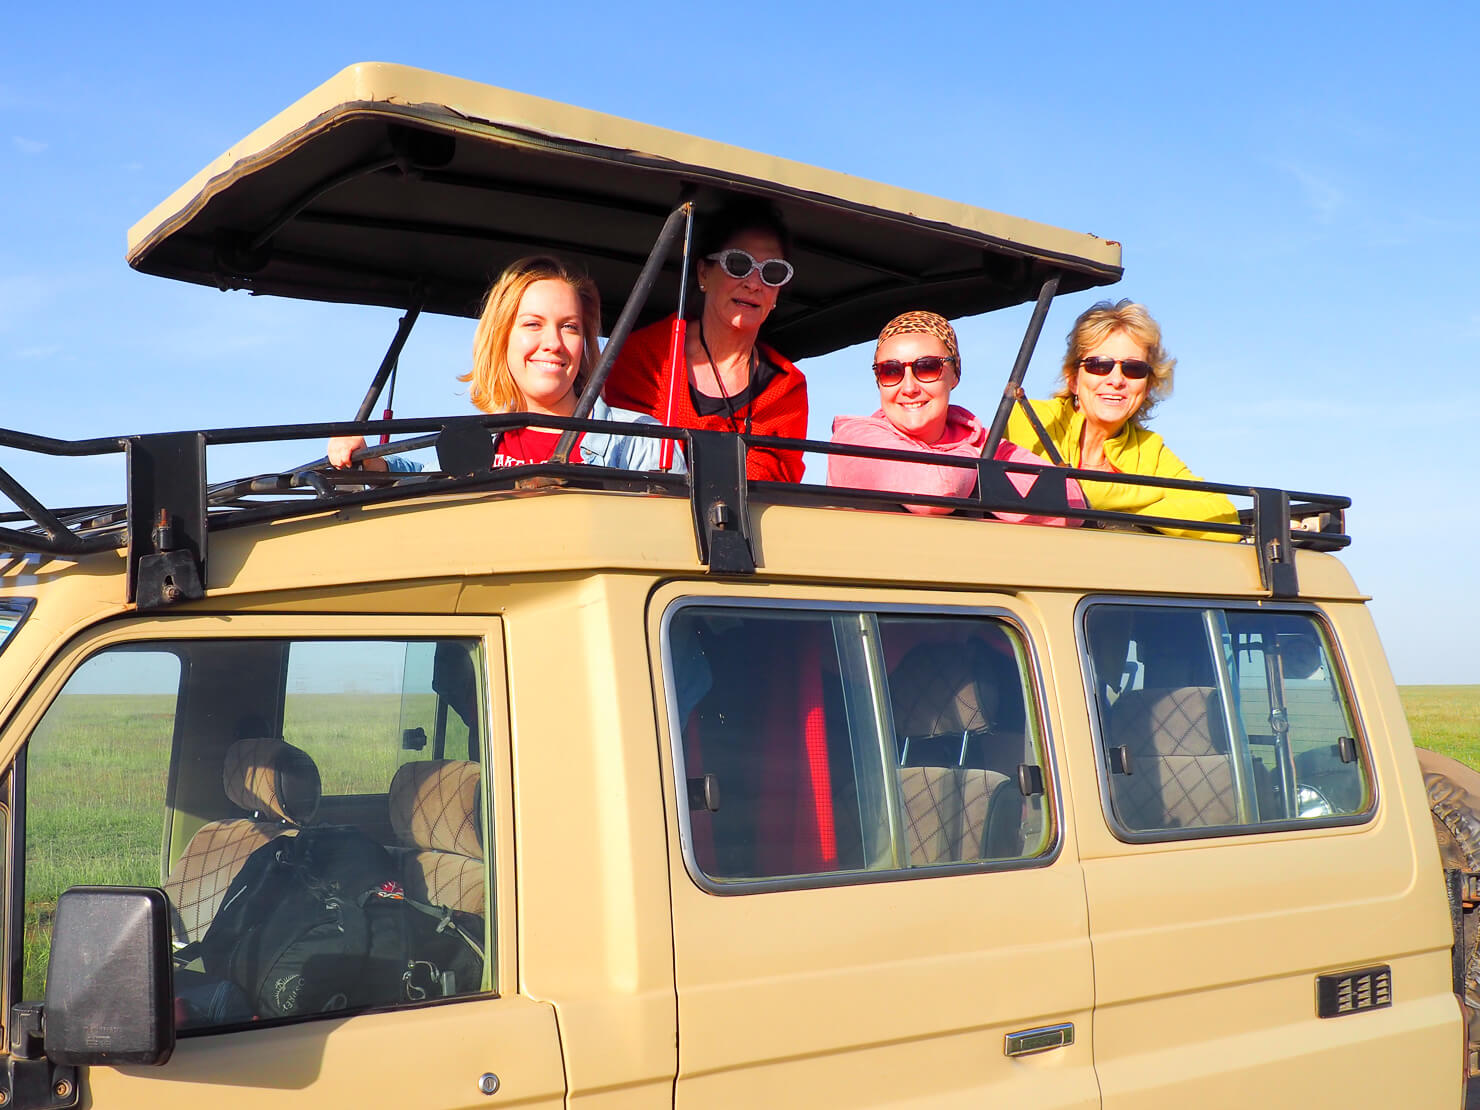 Weighing up the Pros and Cons of Travelling Africa Independently v's Taking an Organised Tour.